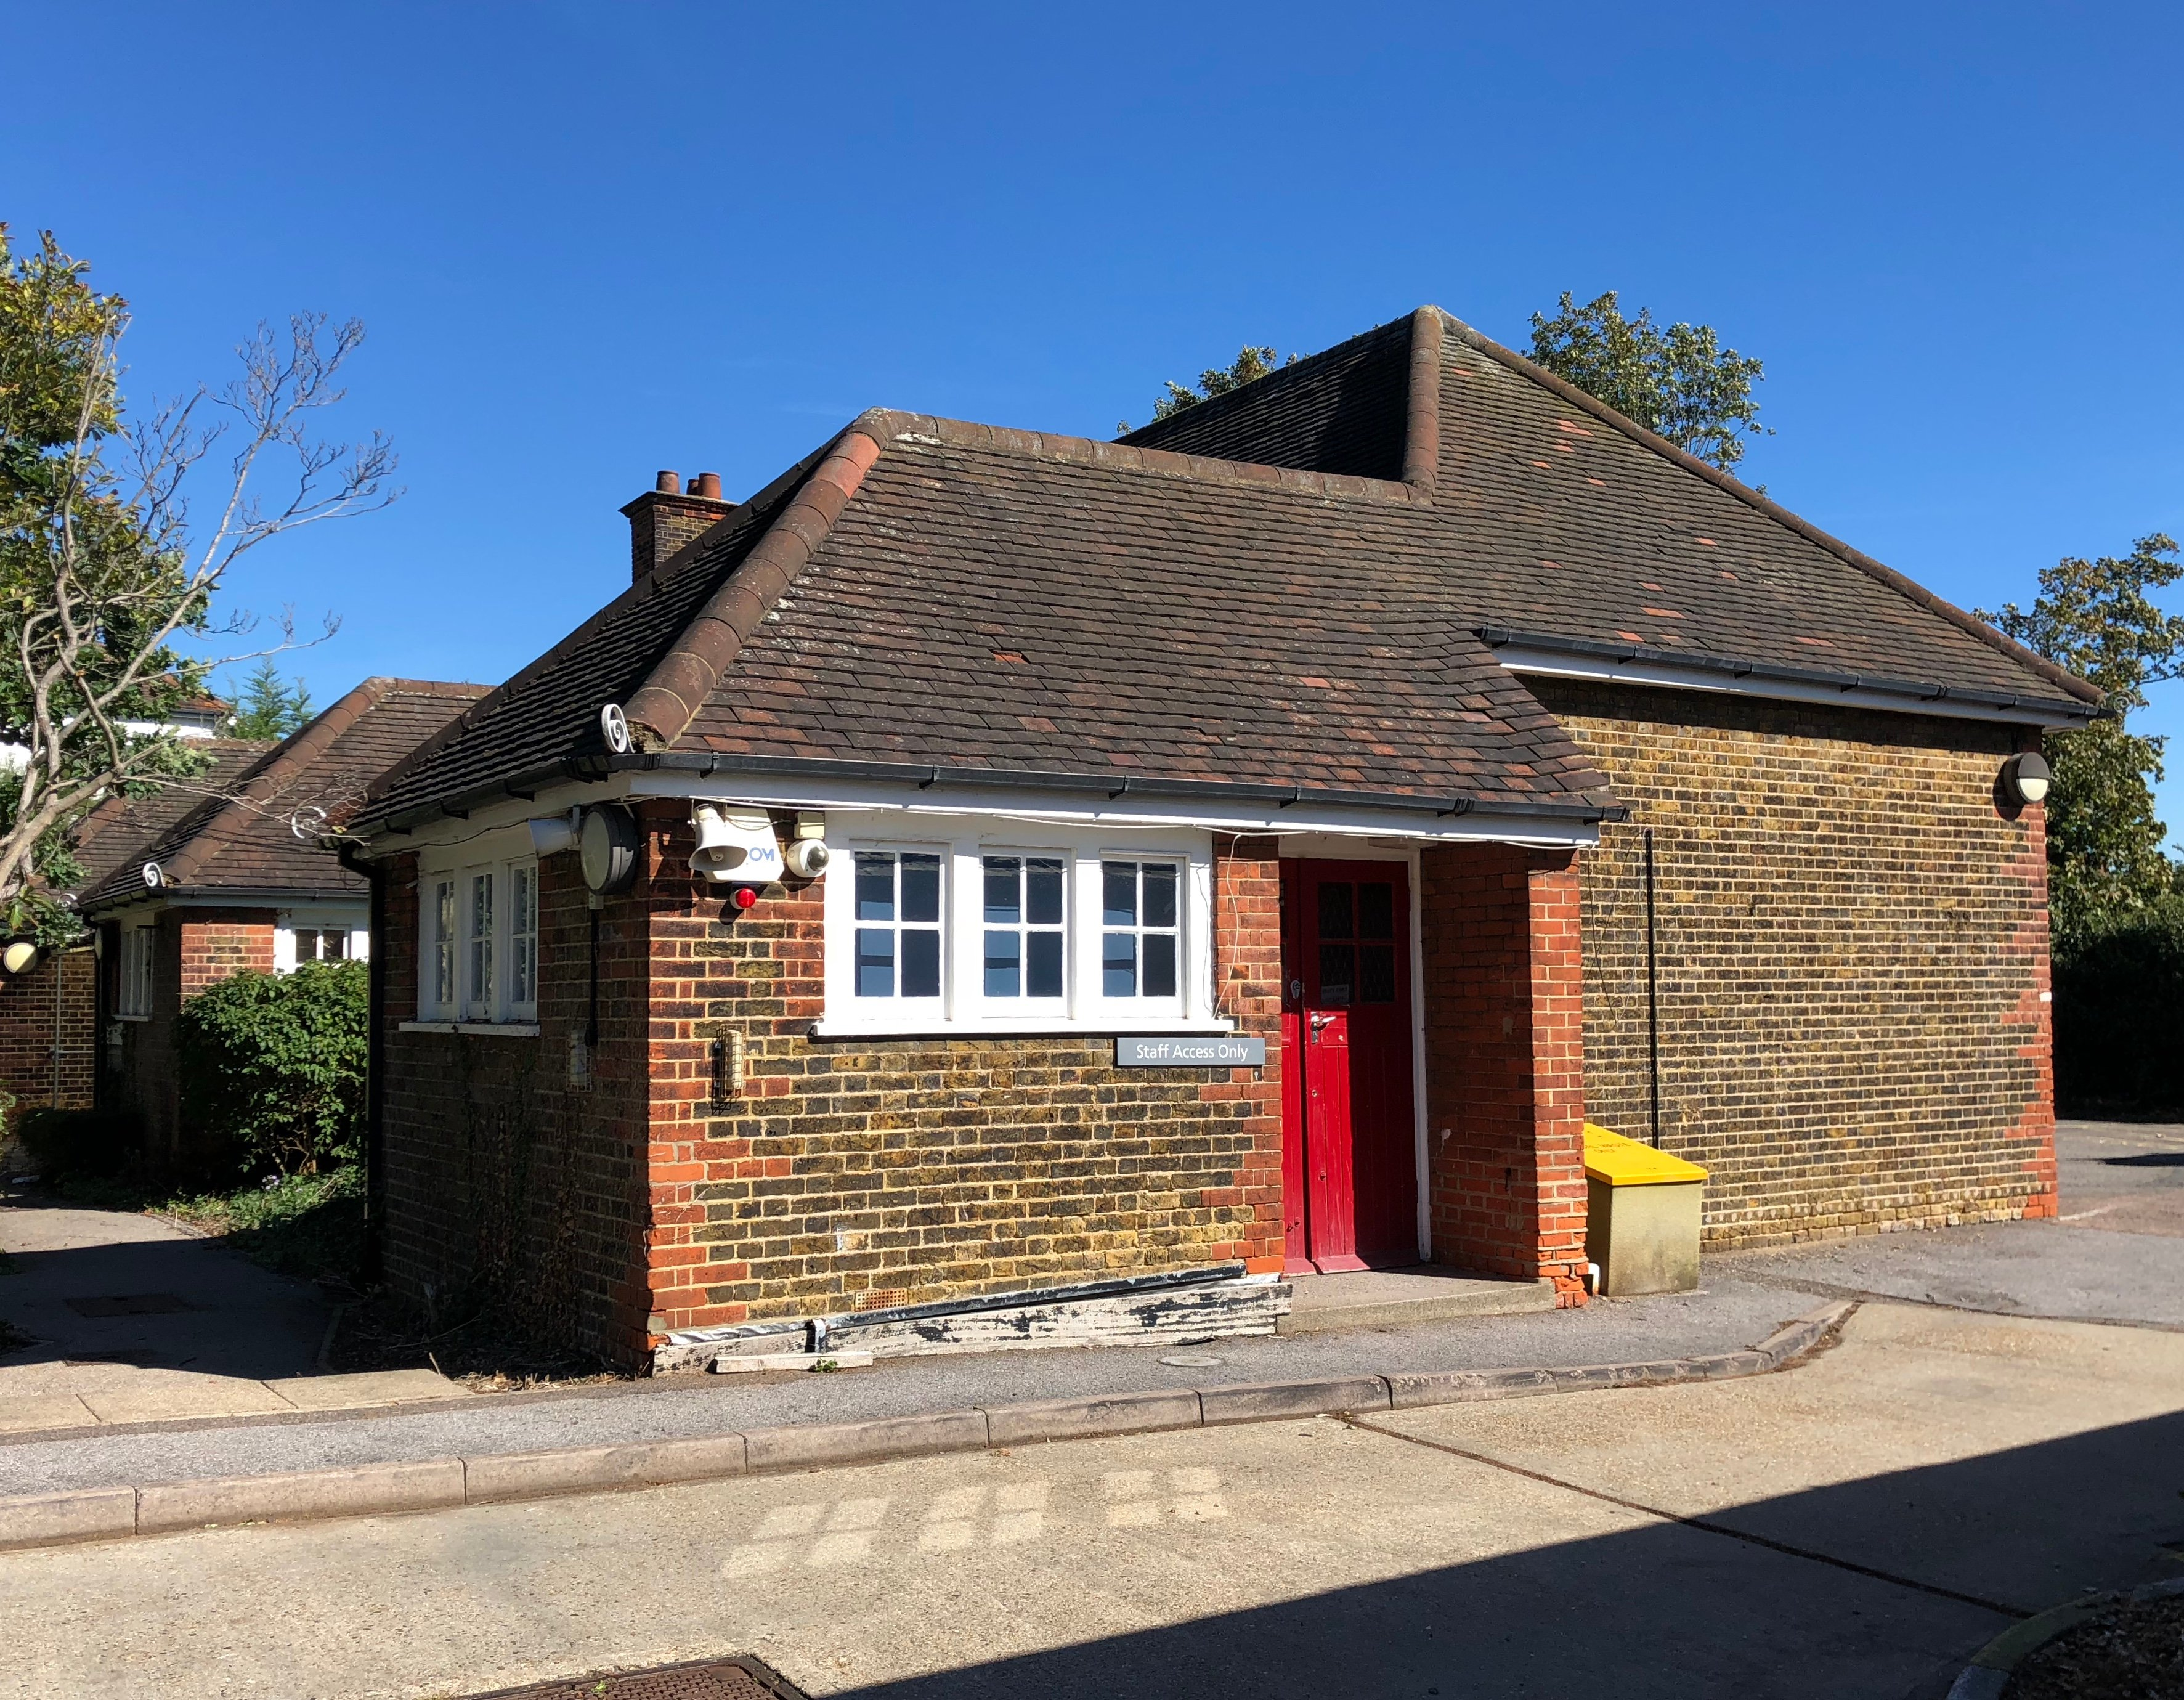 Glenny completes sale of the former Madeira Grove Medical Centre in Woodford Green